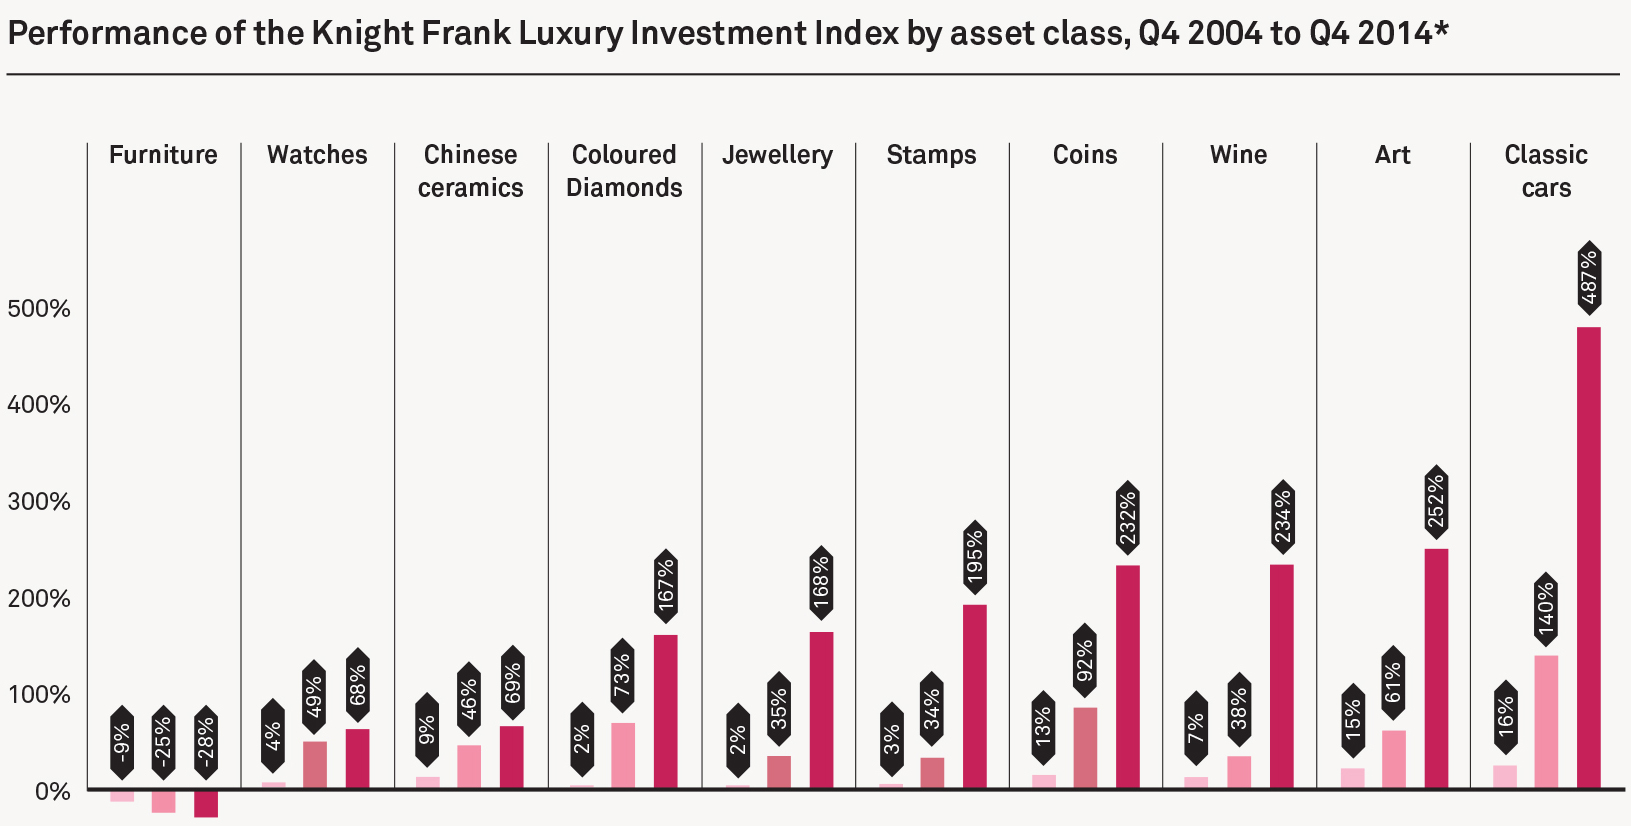 Classic cars were the best collectible investment in 2014